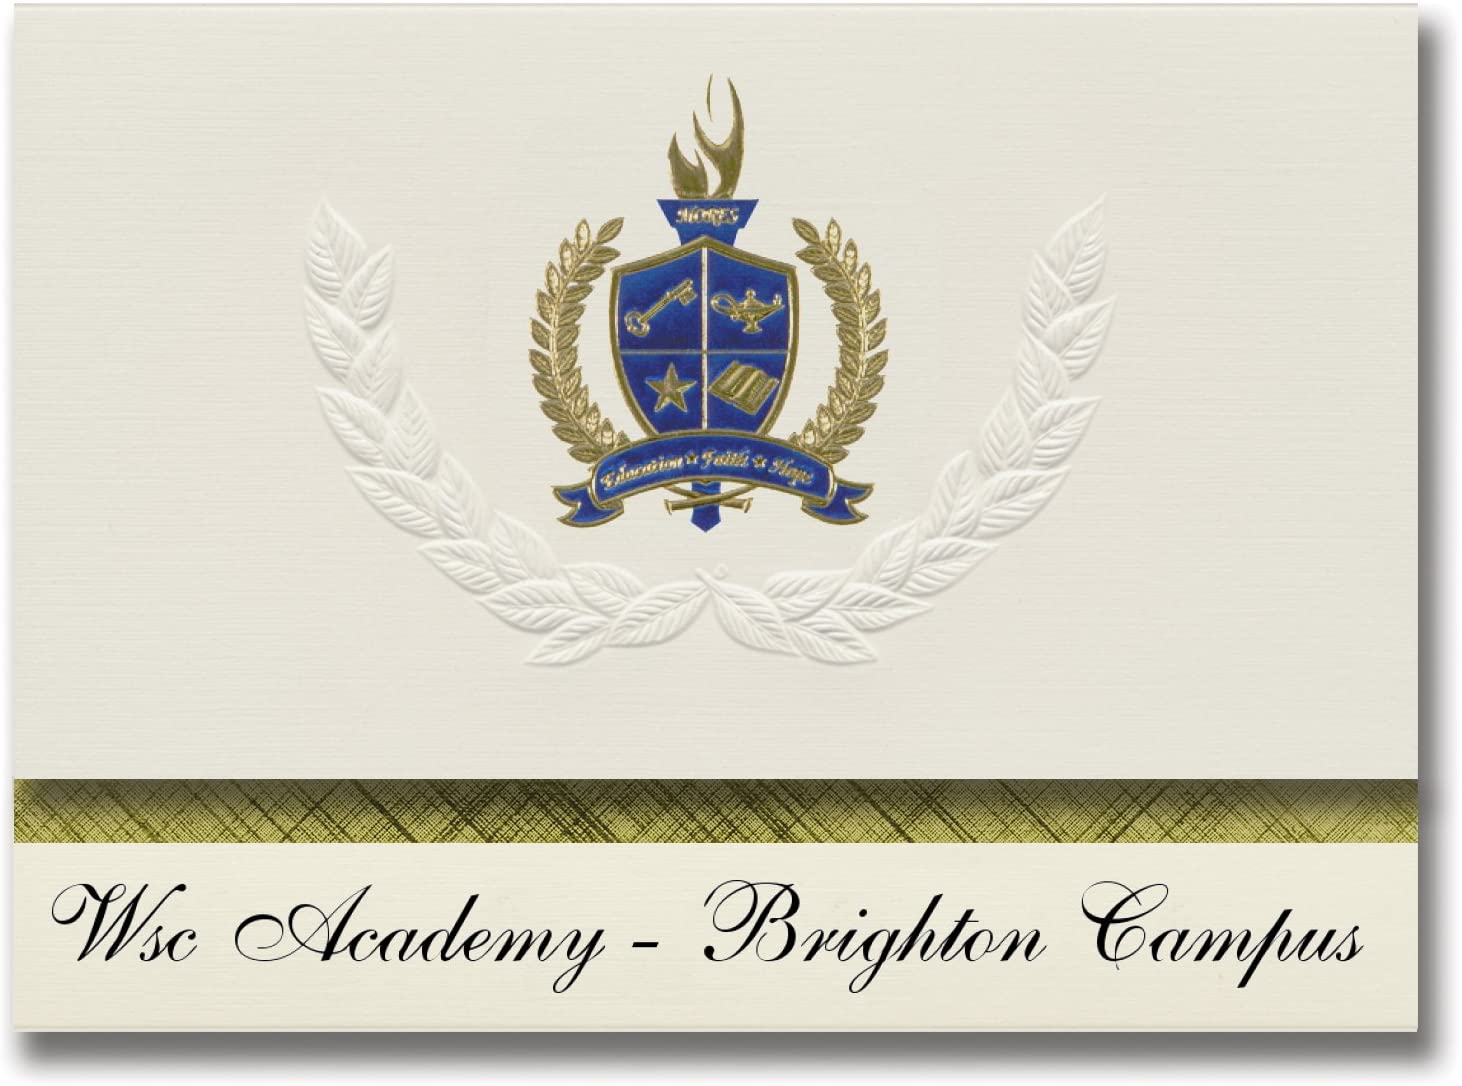 Signature Announcements Wsc Academy - Brighton Campus (Brighton, MI) Graduation Announcements, Presidential style, Elite package of 25 with Gold & Blue Metallic Foil seal